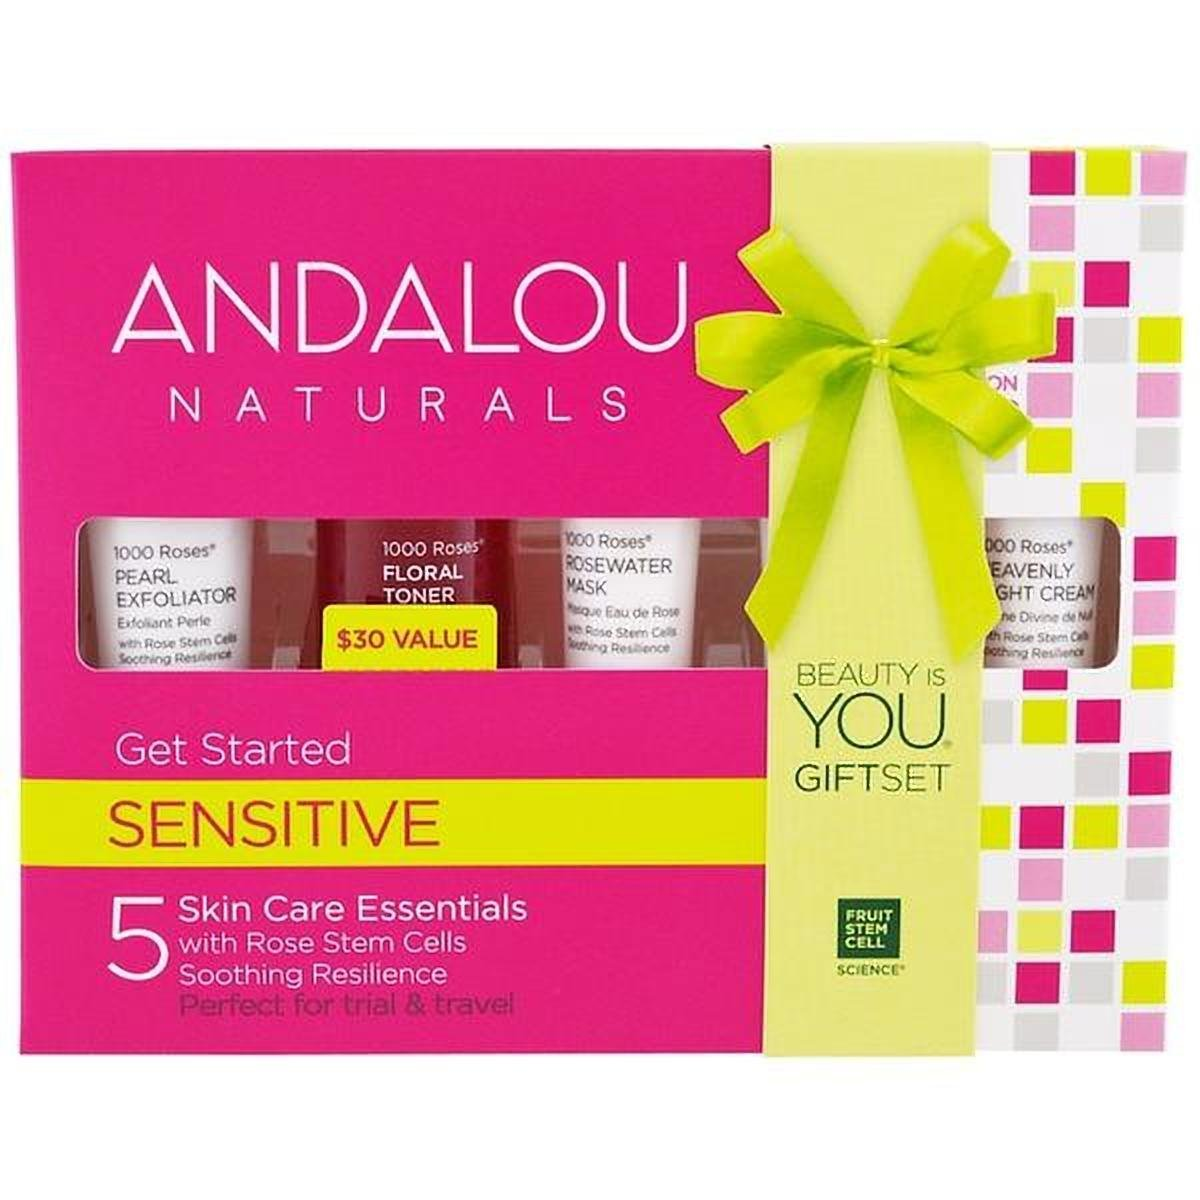 Andalou Naturals 1000 Roses 5 Pieces Get Started Kit